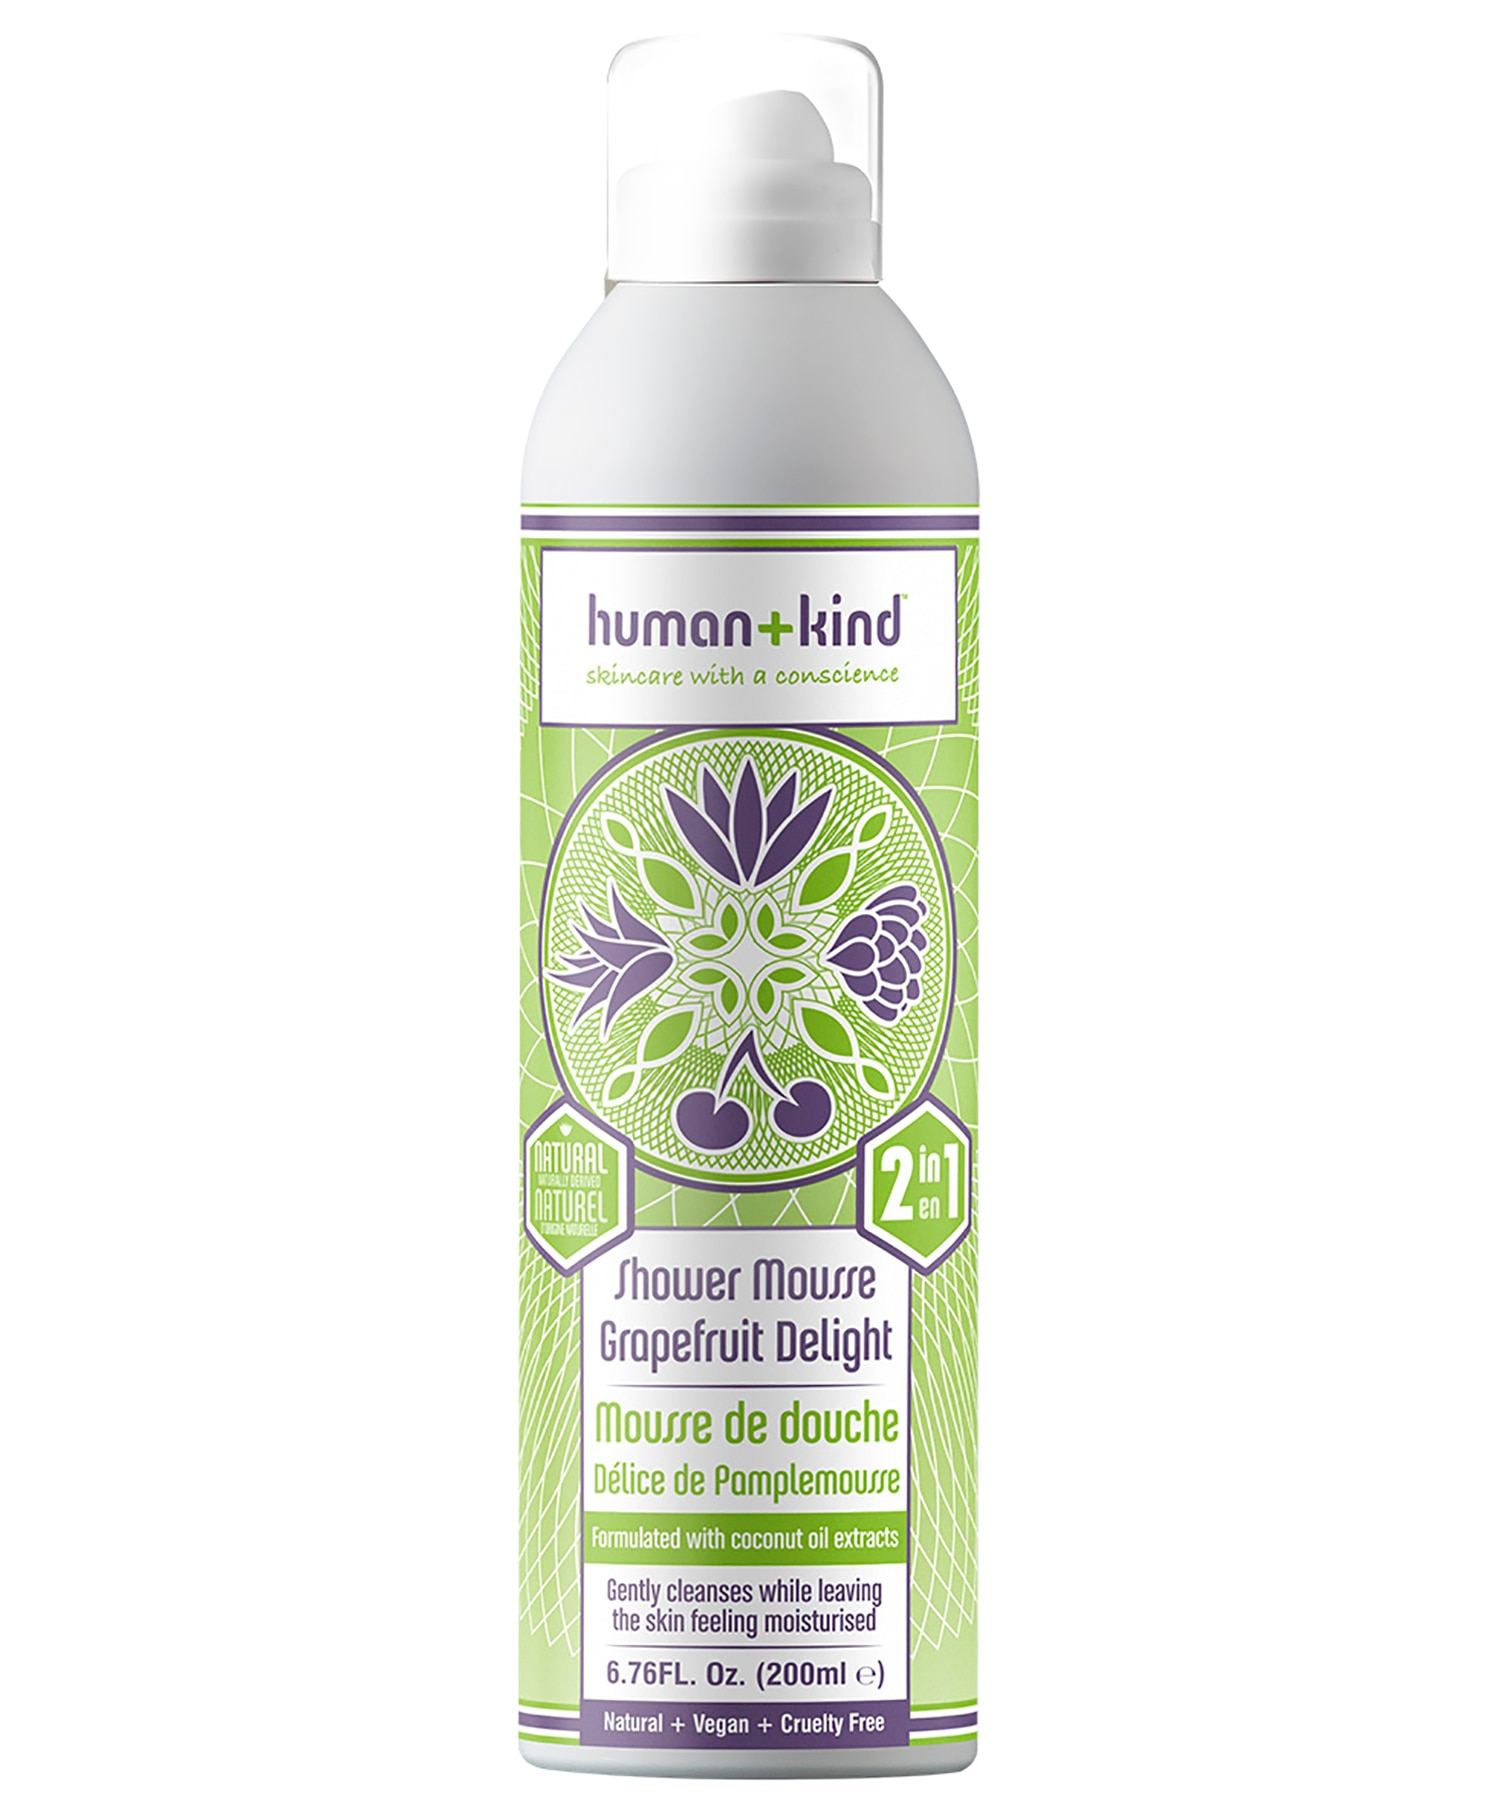 Human+Kind Shower Mousse